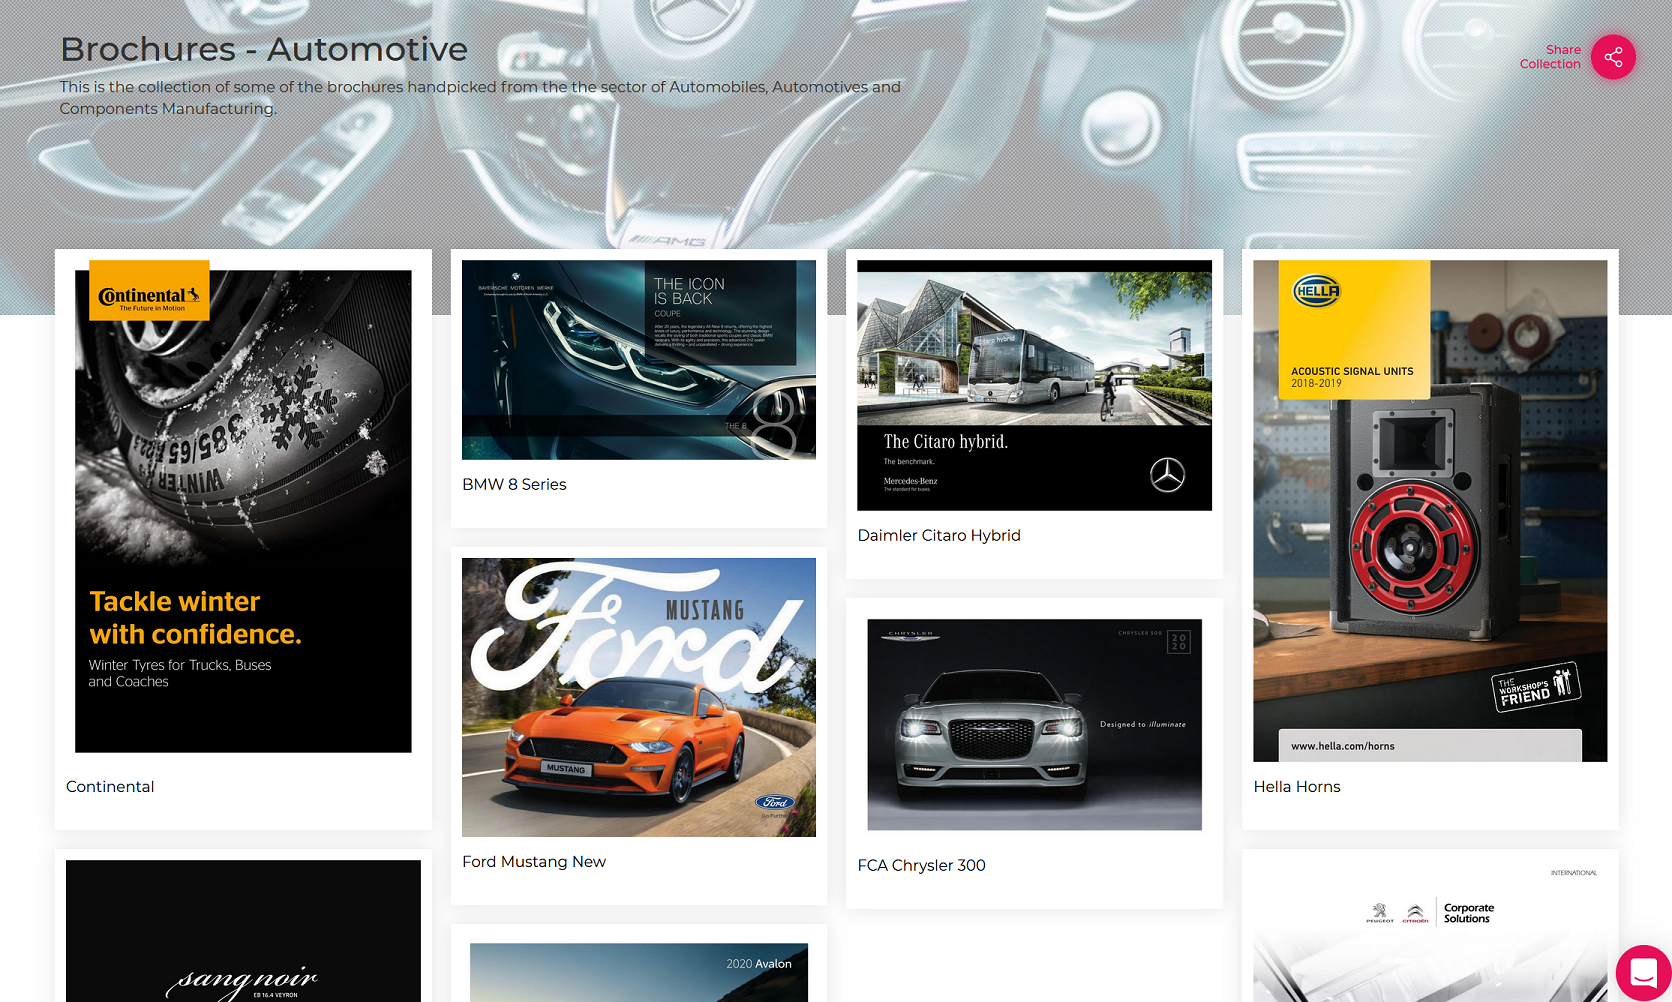 Brochure - Automotive Industry